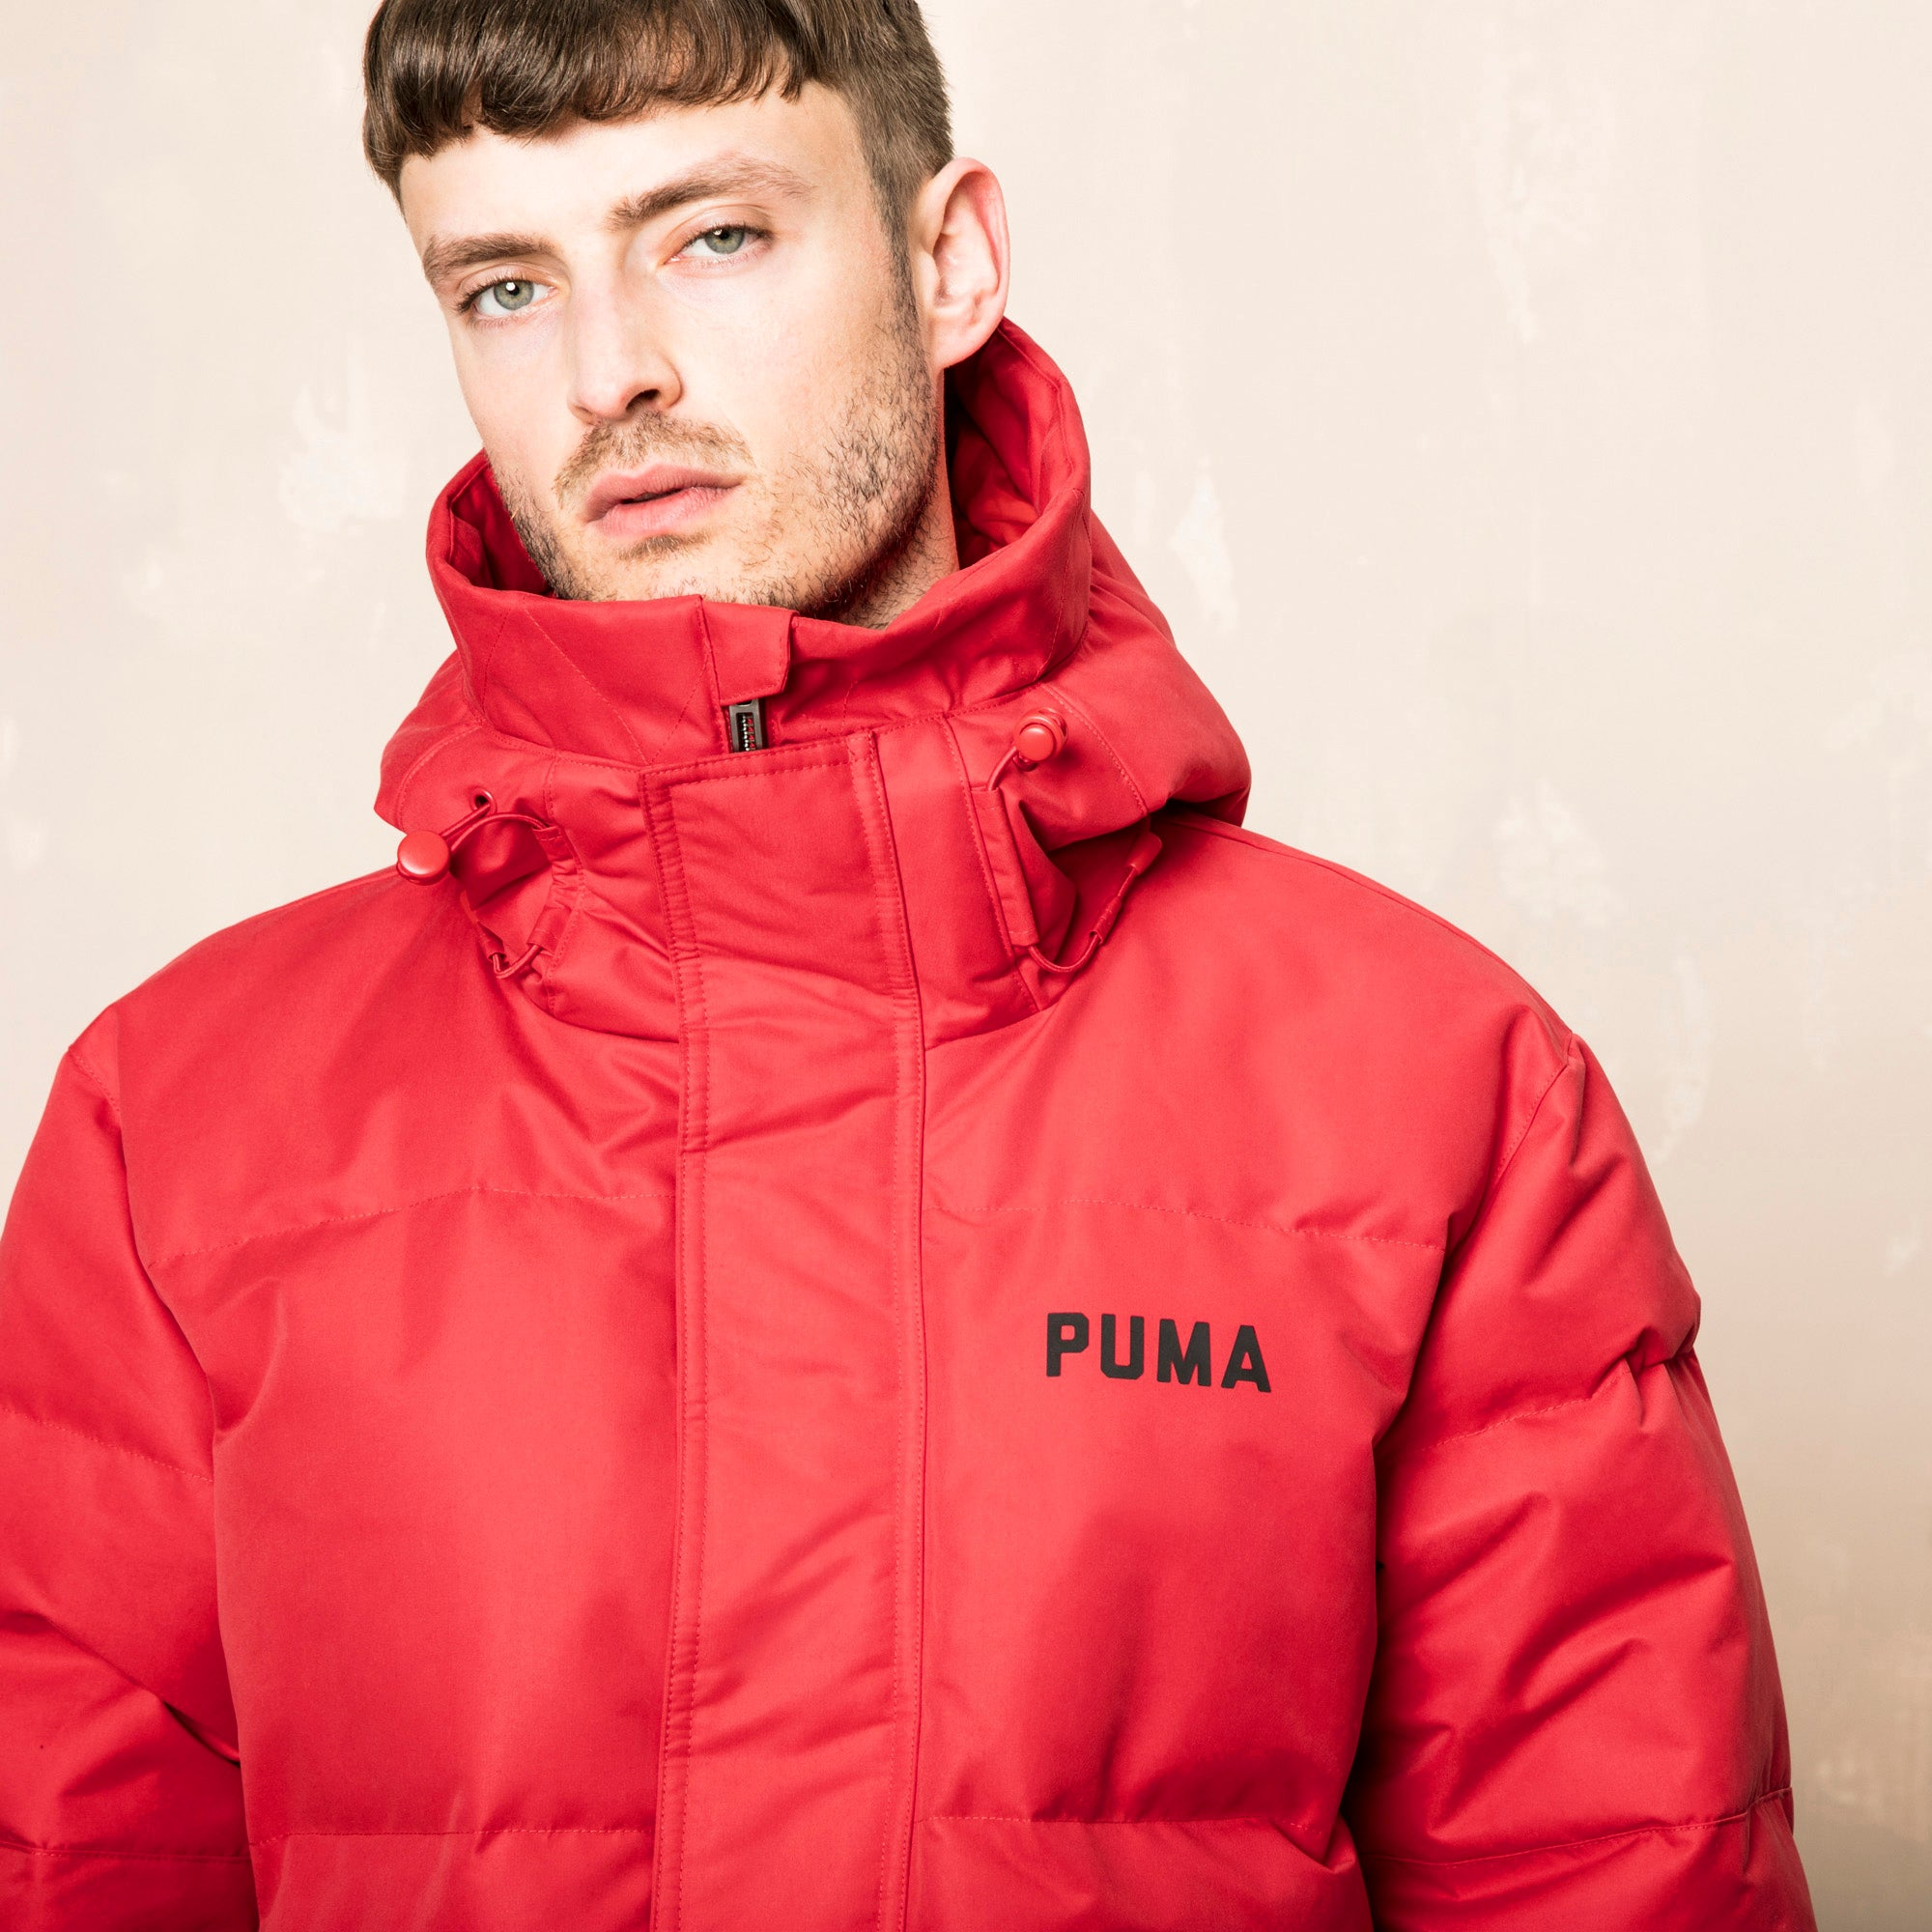 PUMA | Outlaw Moscow Jacket Ribbon Red